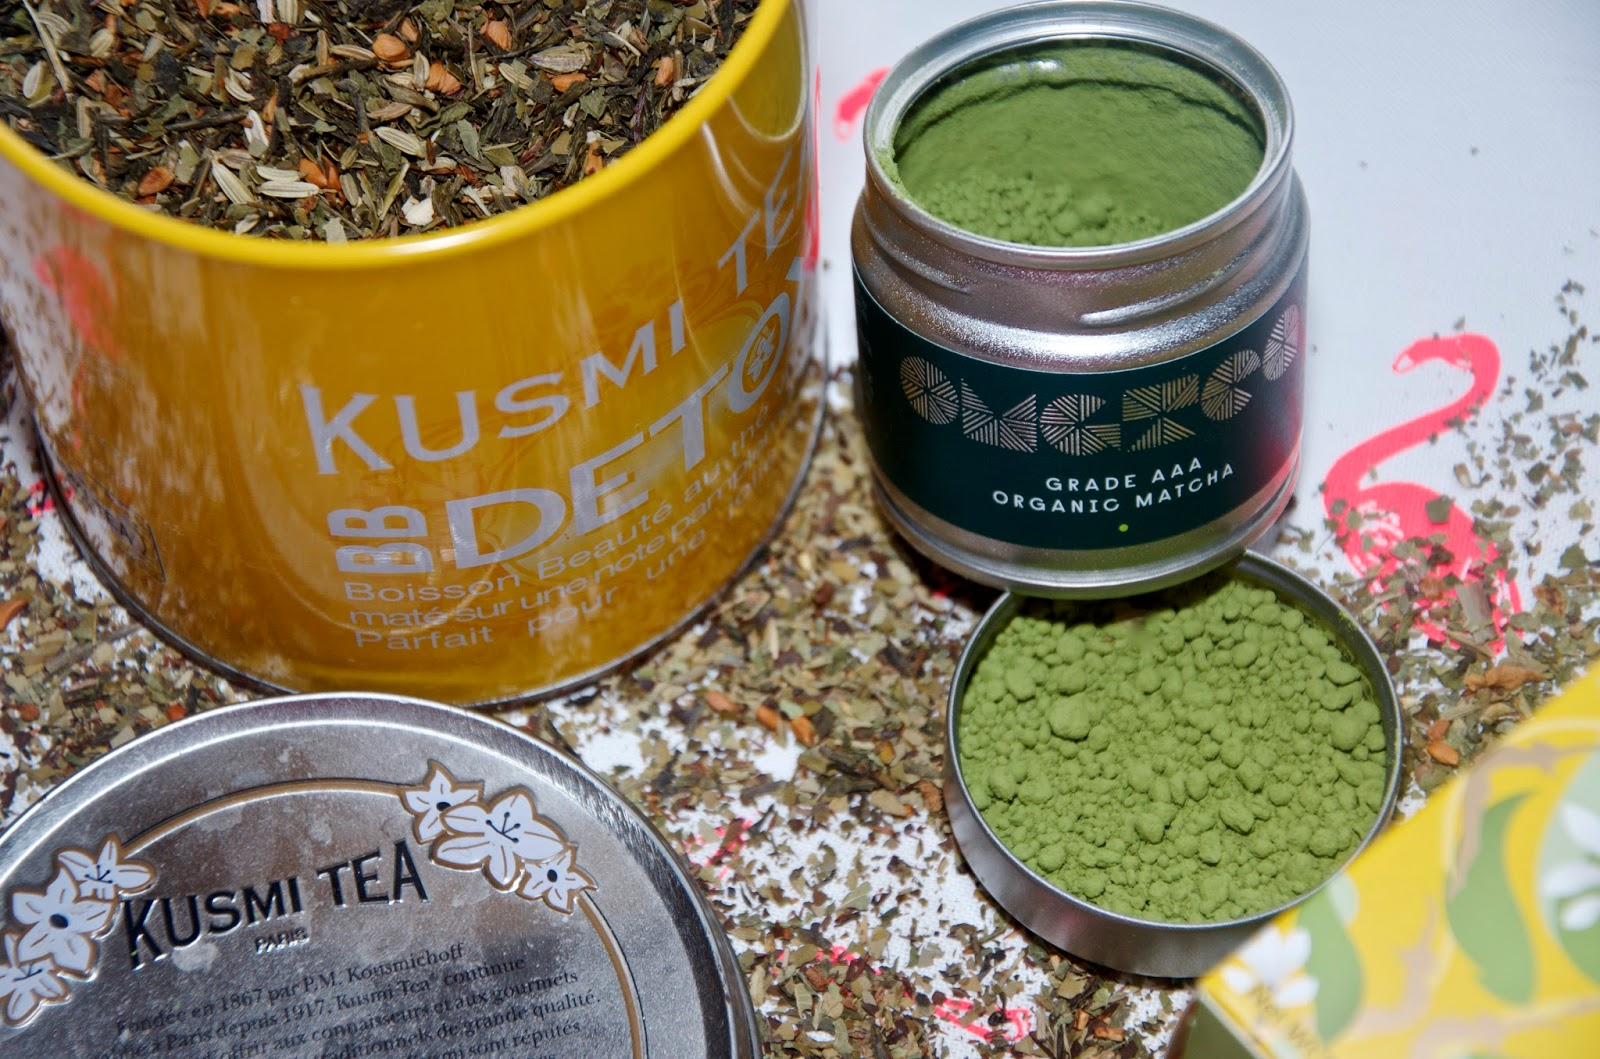 Loose Leaf and matcha tea